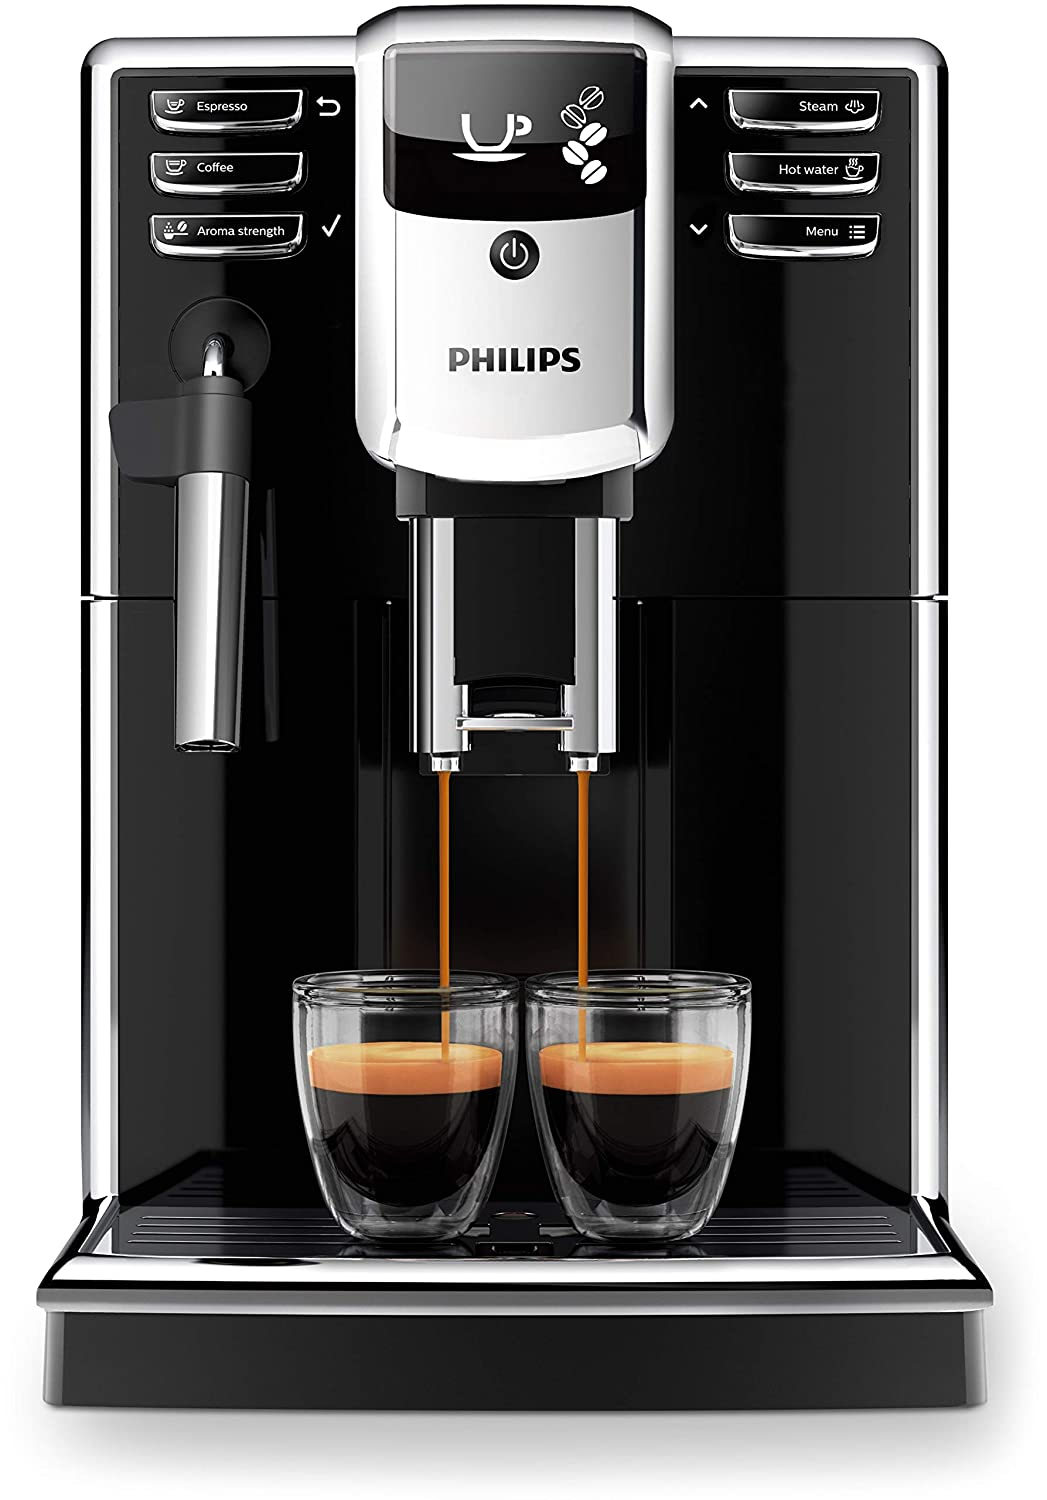 Philips 5000 series - Cafetera (Independiente, Máquina espresso, 1,8 L, Granos de café, Molinillo integrado, Negro): Amazon.es: Hogar